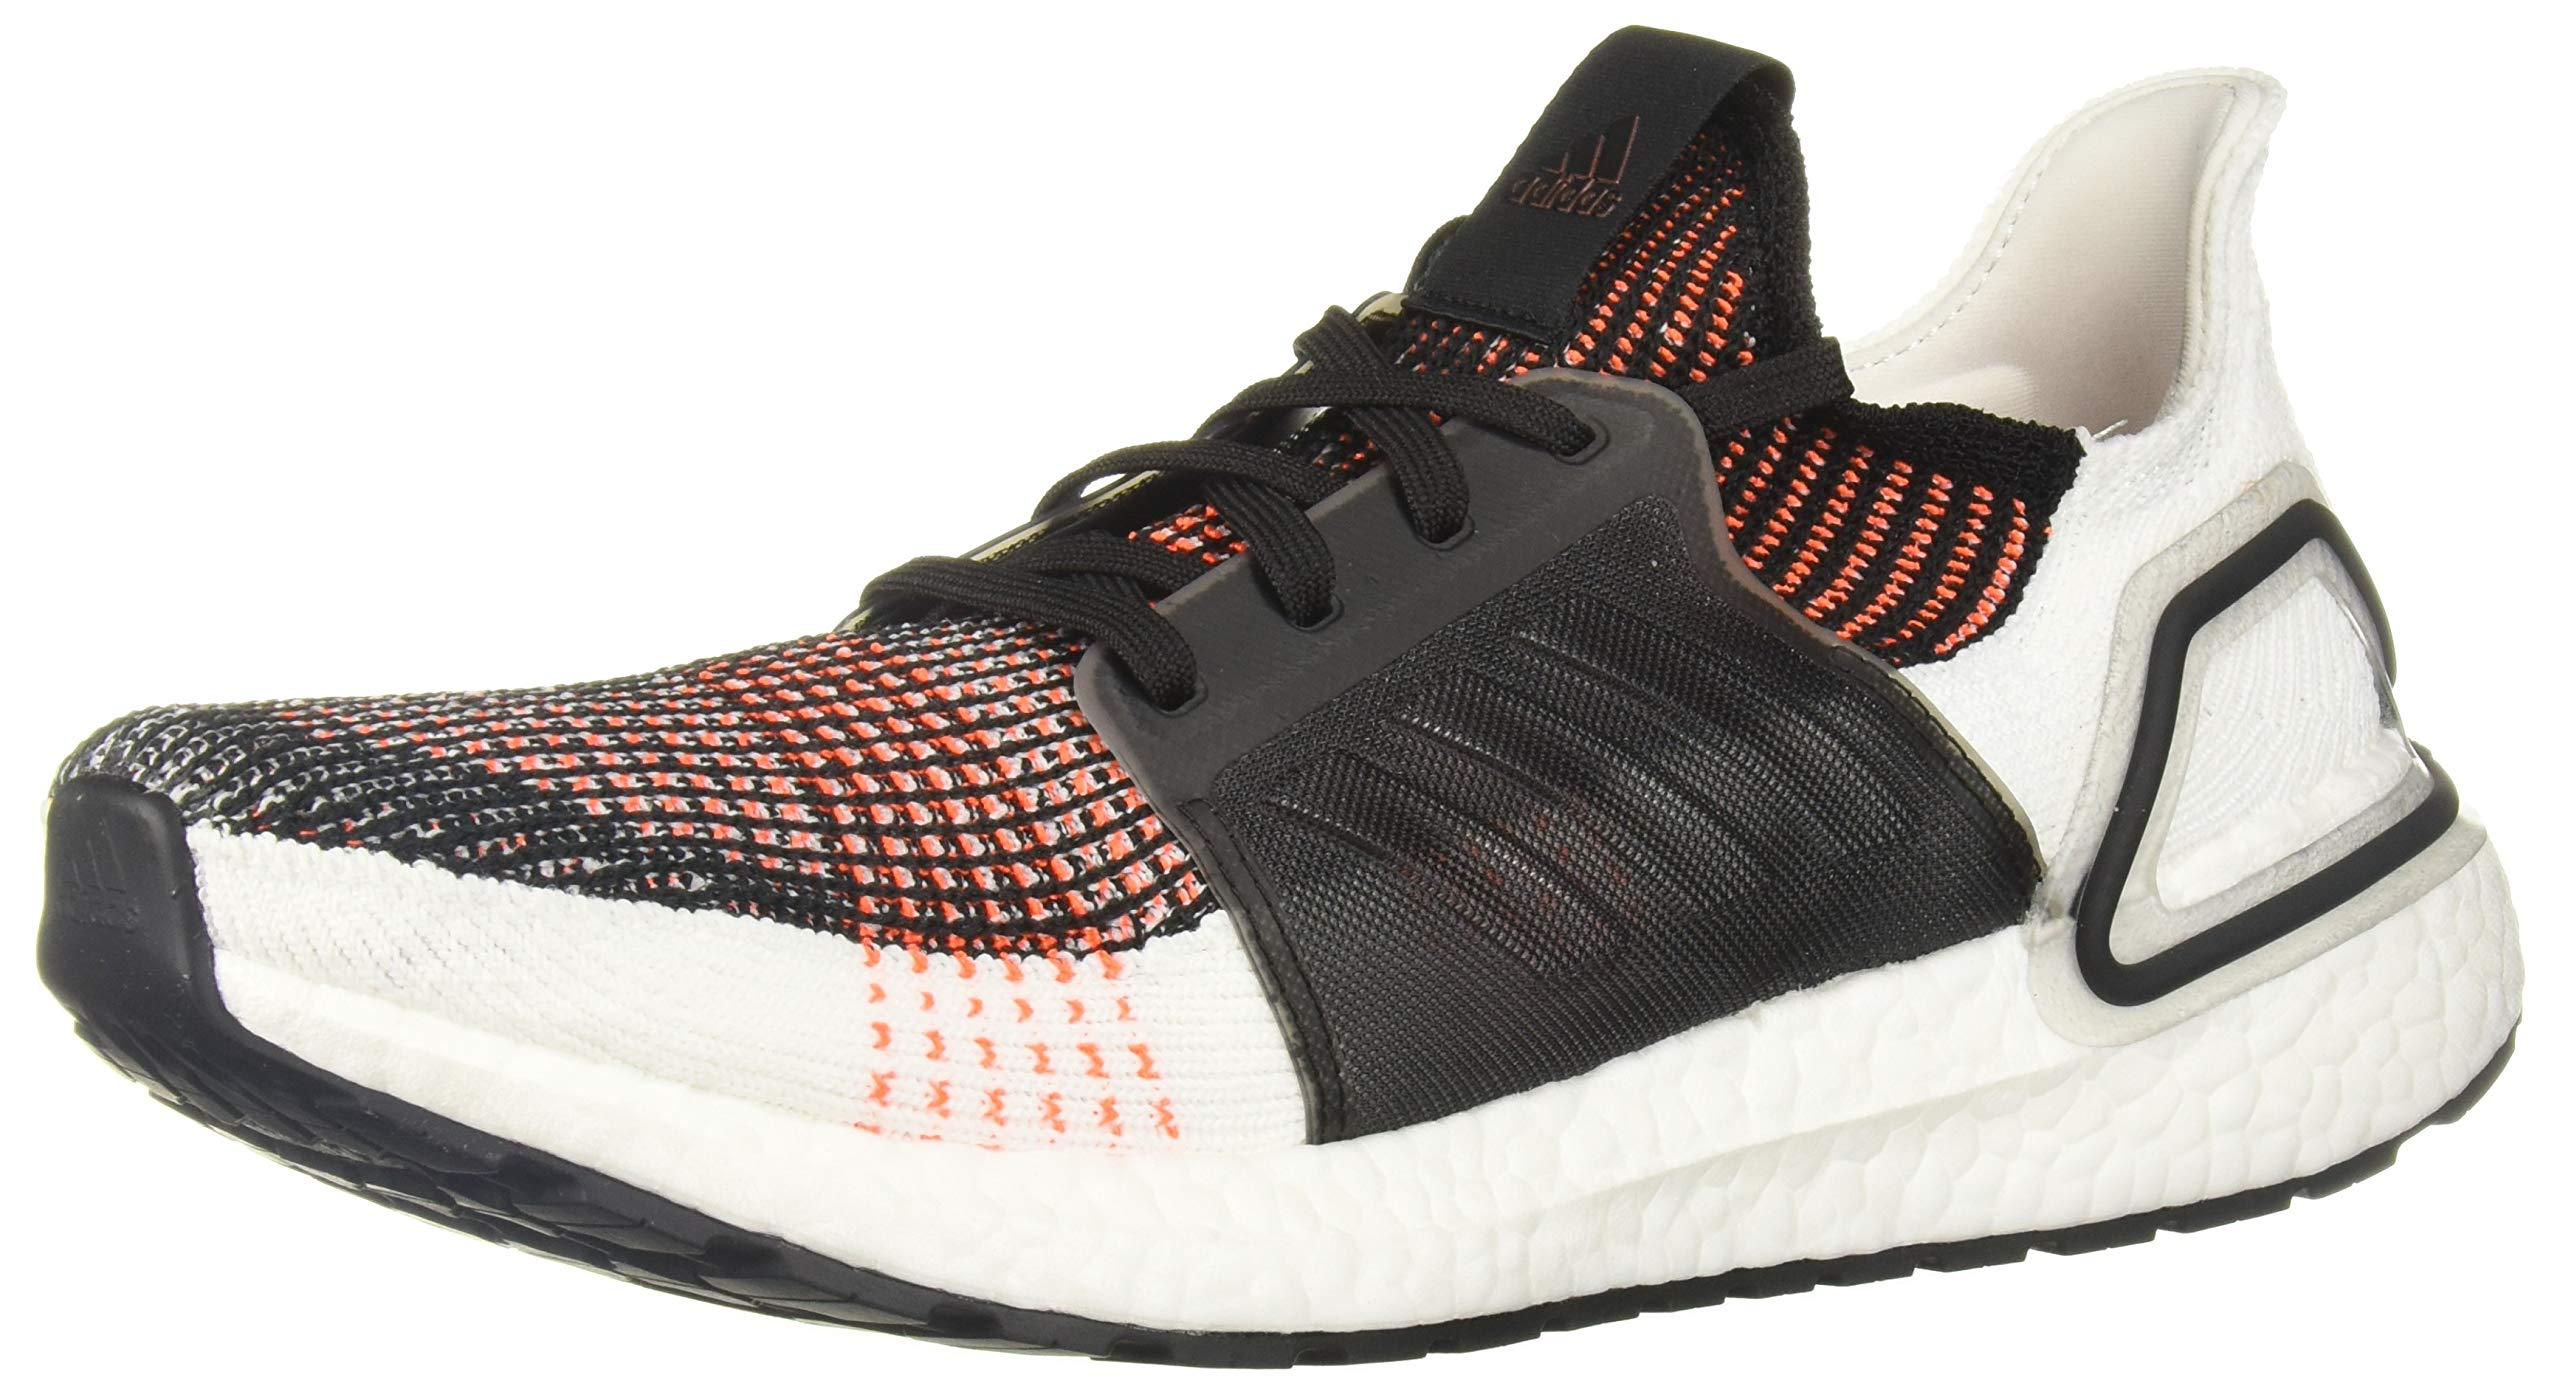 adidas Men's Ultraboost 19 Running Shoe, Black/White/Solar Orange, 13 M US by adidas